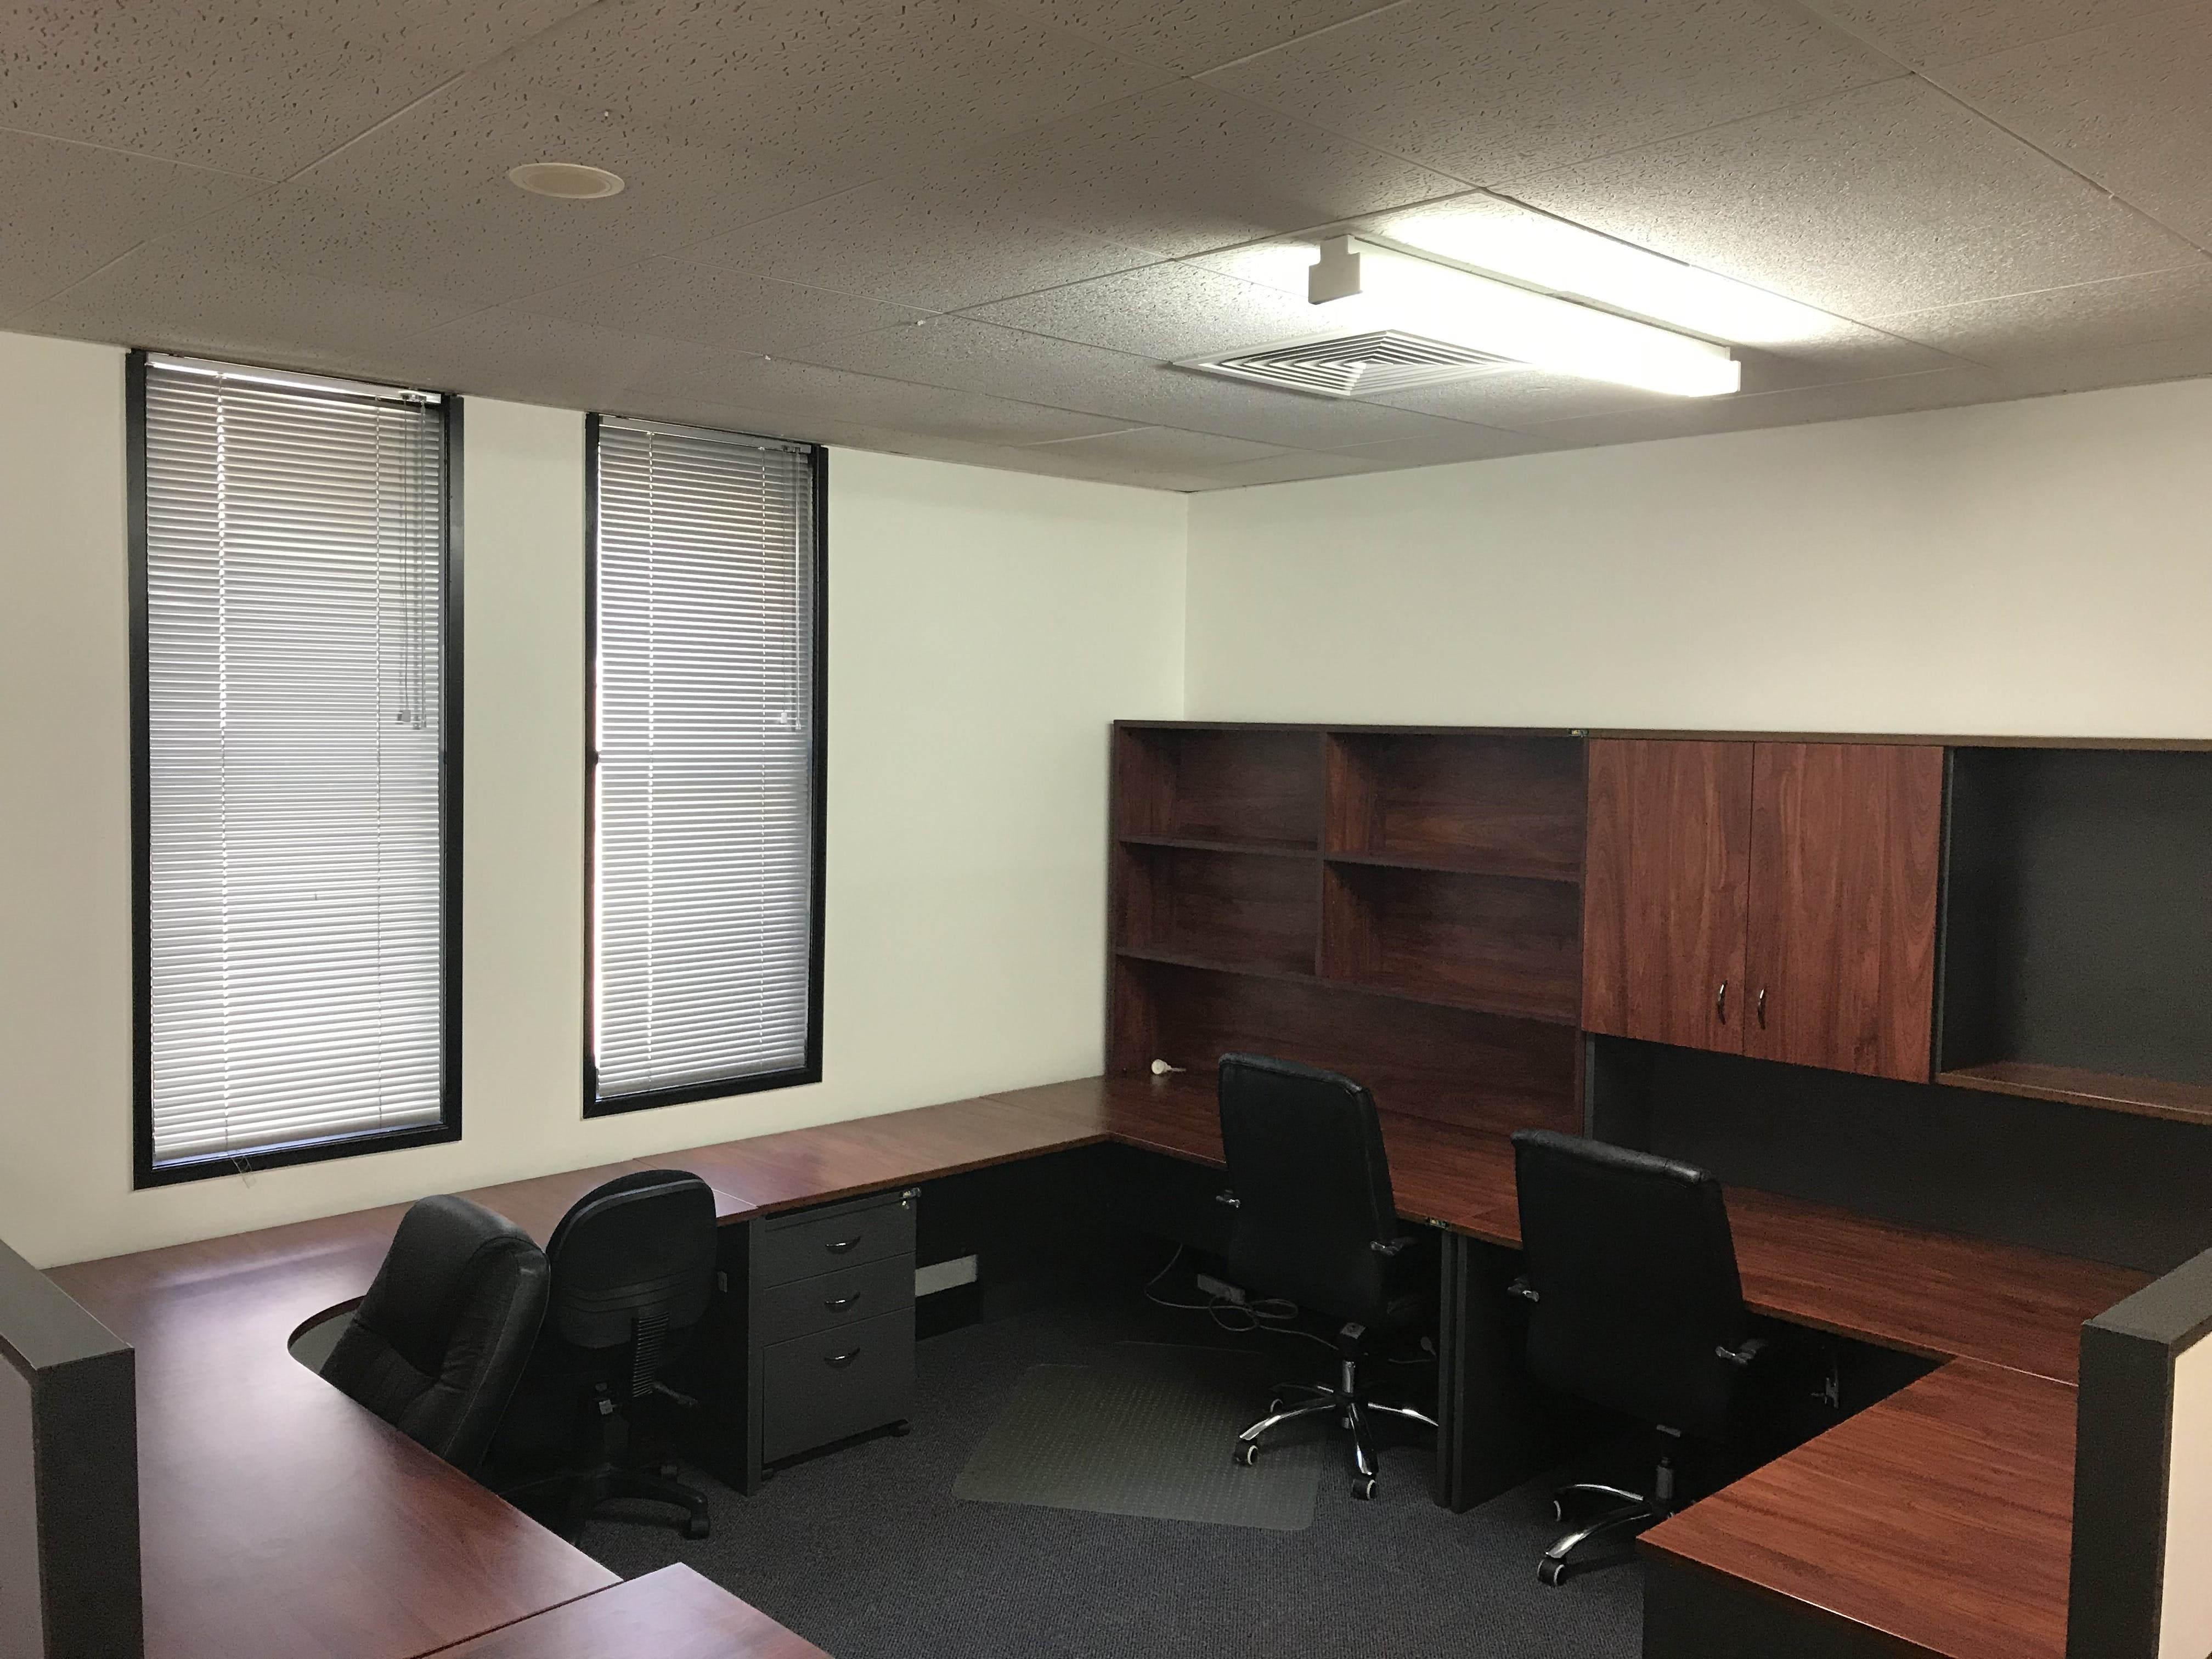 Suite 3, private office at 161 King Street, image 1